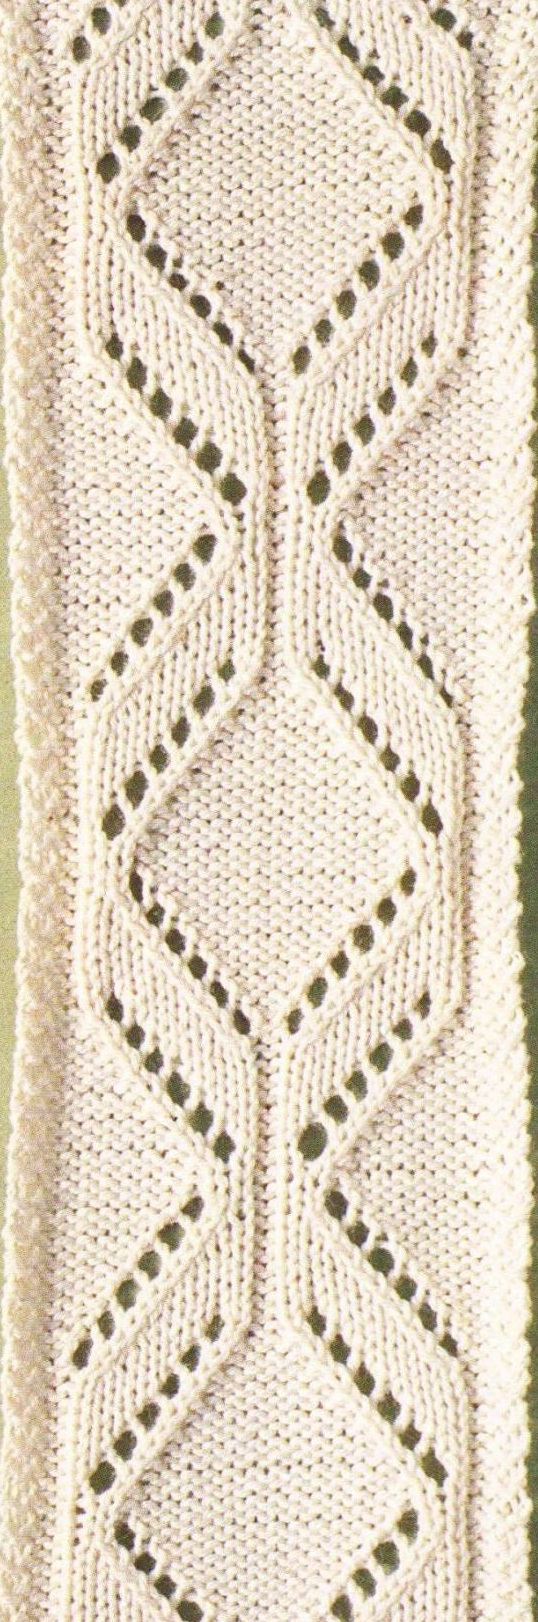 Narrow Diamond Knit Lace